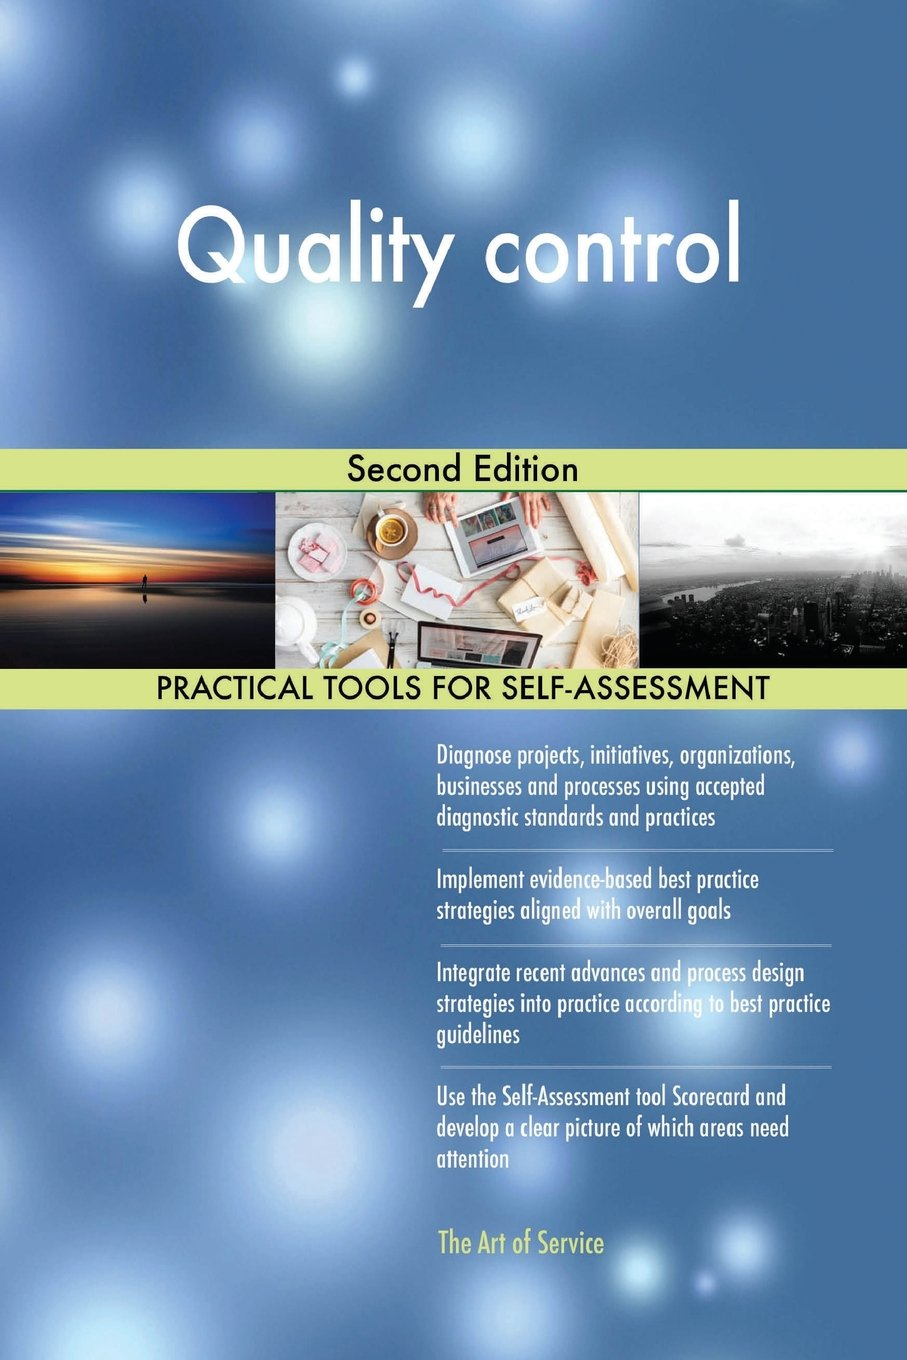 Quality control Second Edition